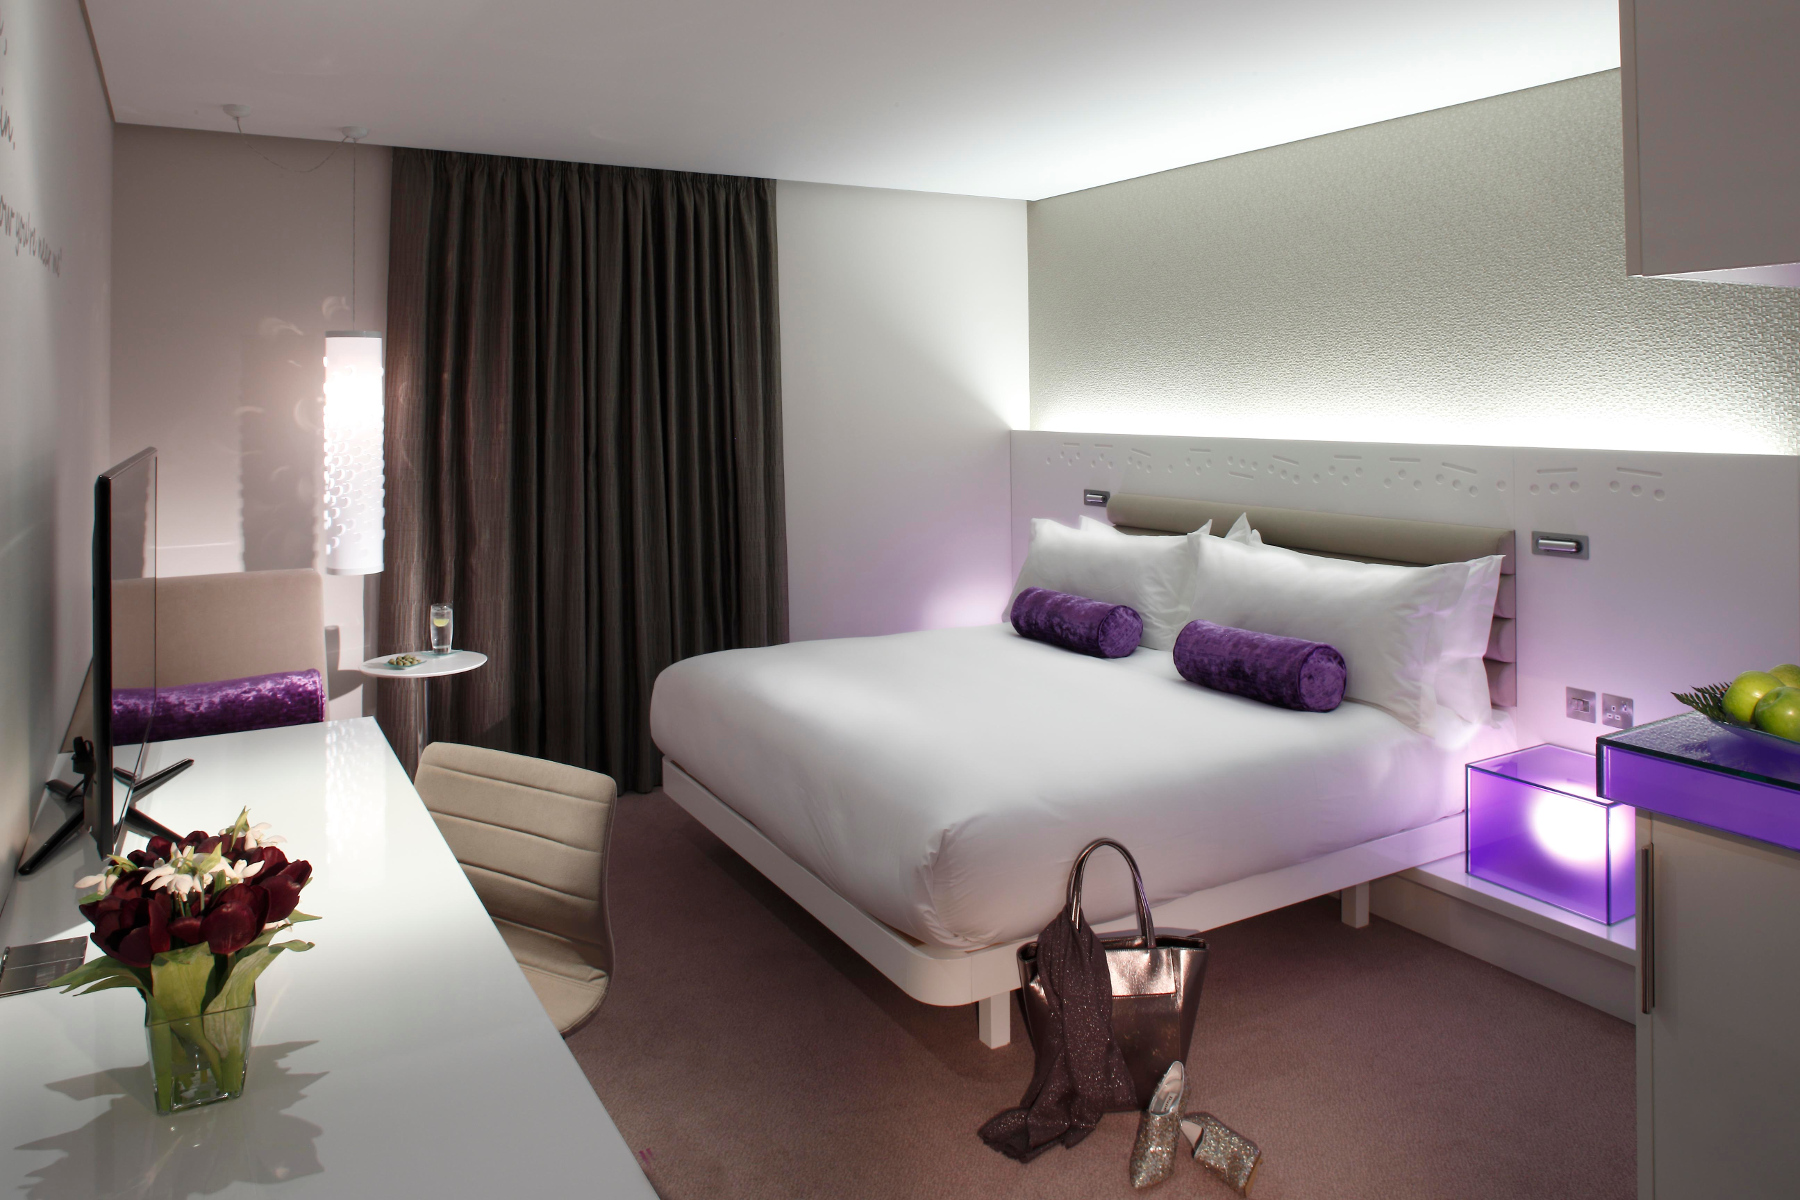 Hotel Fitout-Morrison Hotel-Bedroom 2